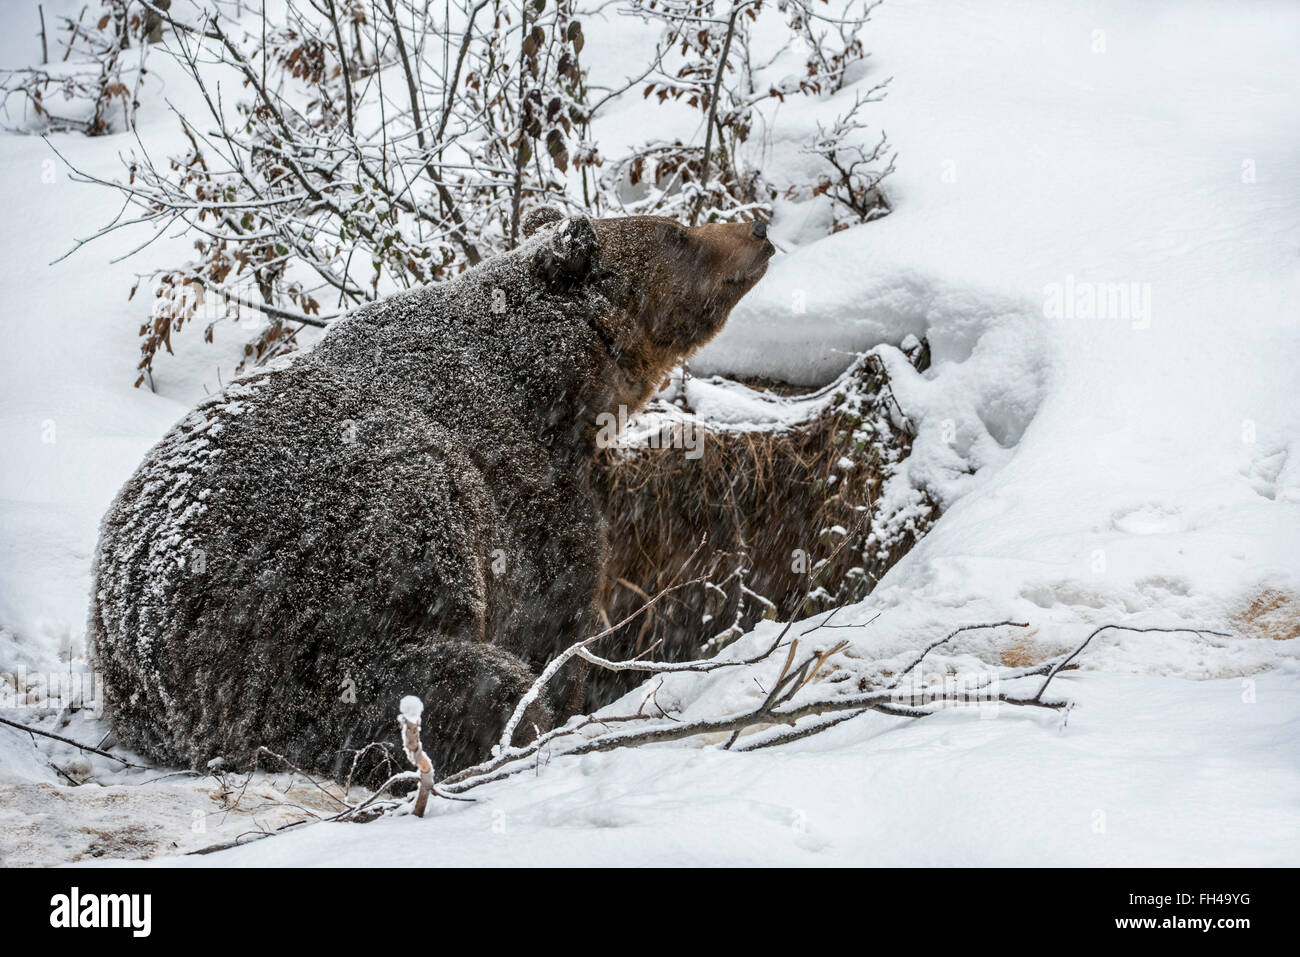 Brown bear (Ursus arctos) entering den during snow shower in autumn / winter - Stock Image